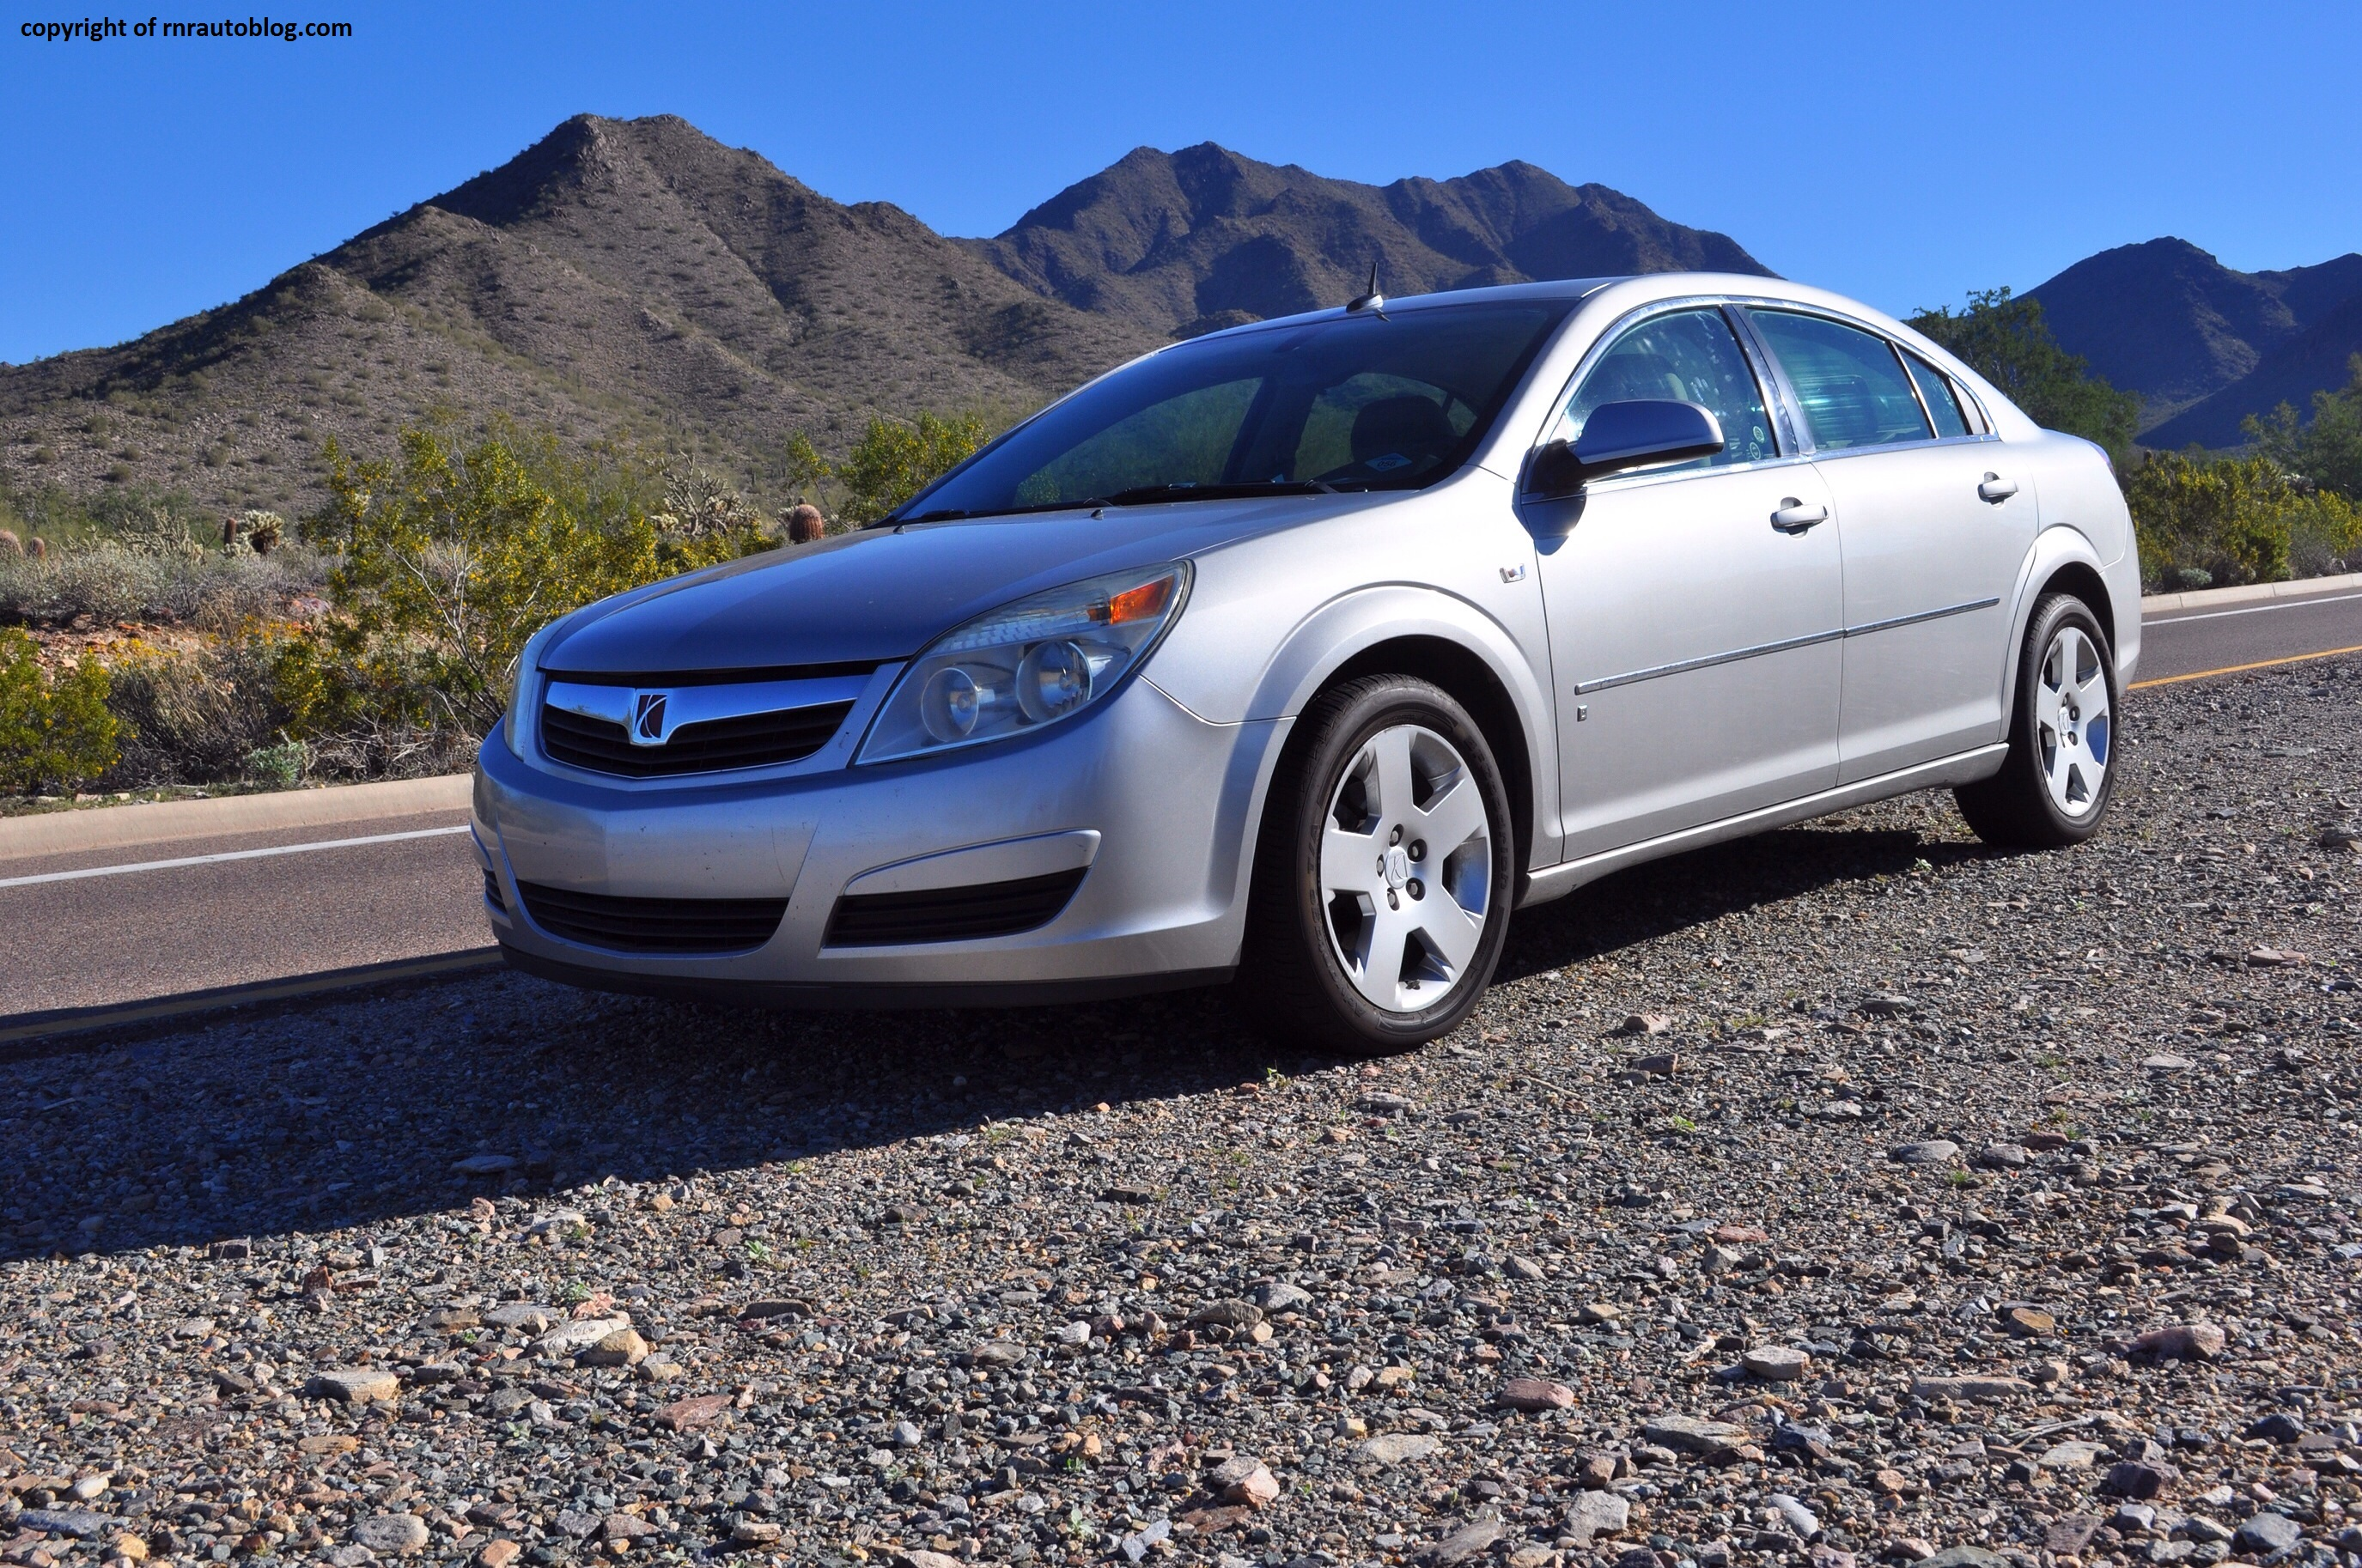 Saturn Aura Review >> 2007 Saturn Aura XE Review | RNR Automotive Blog